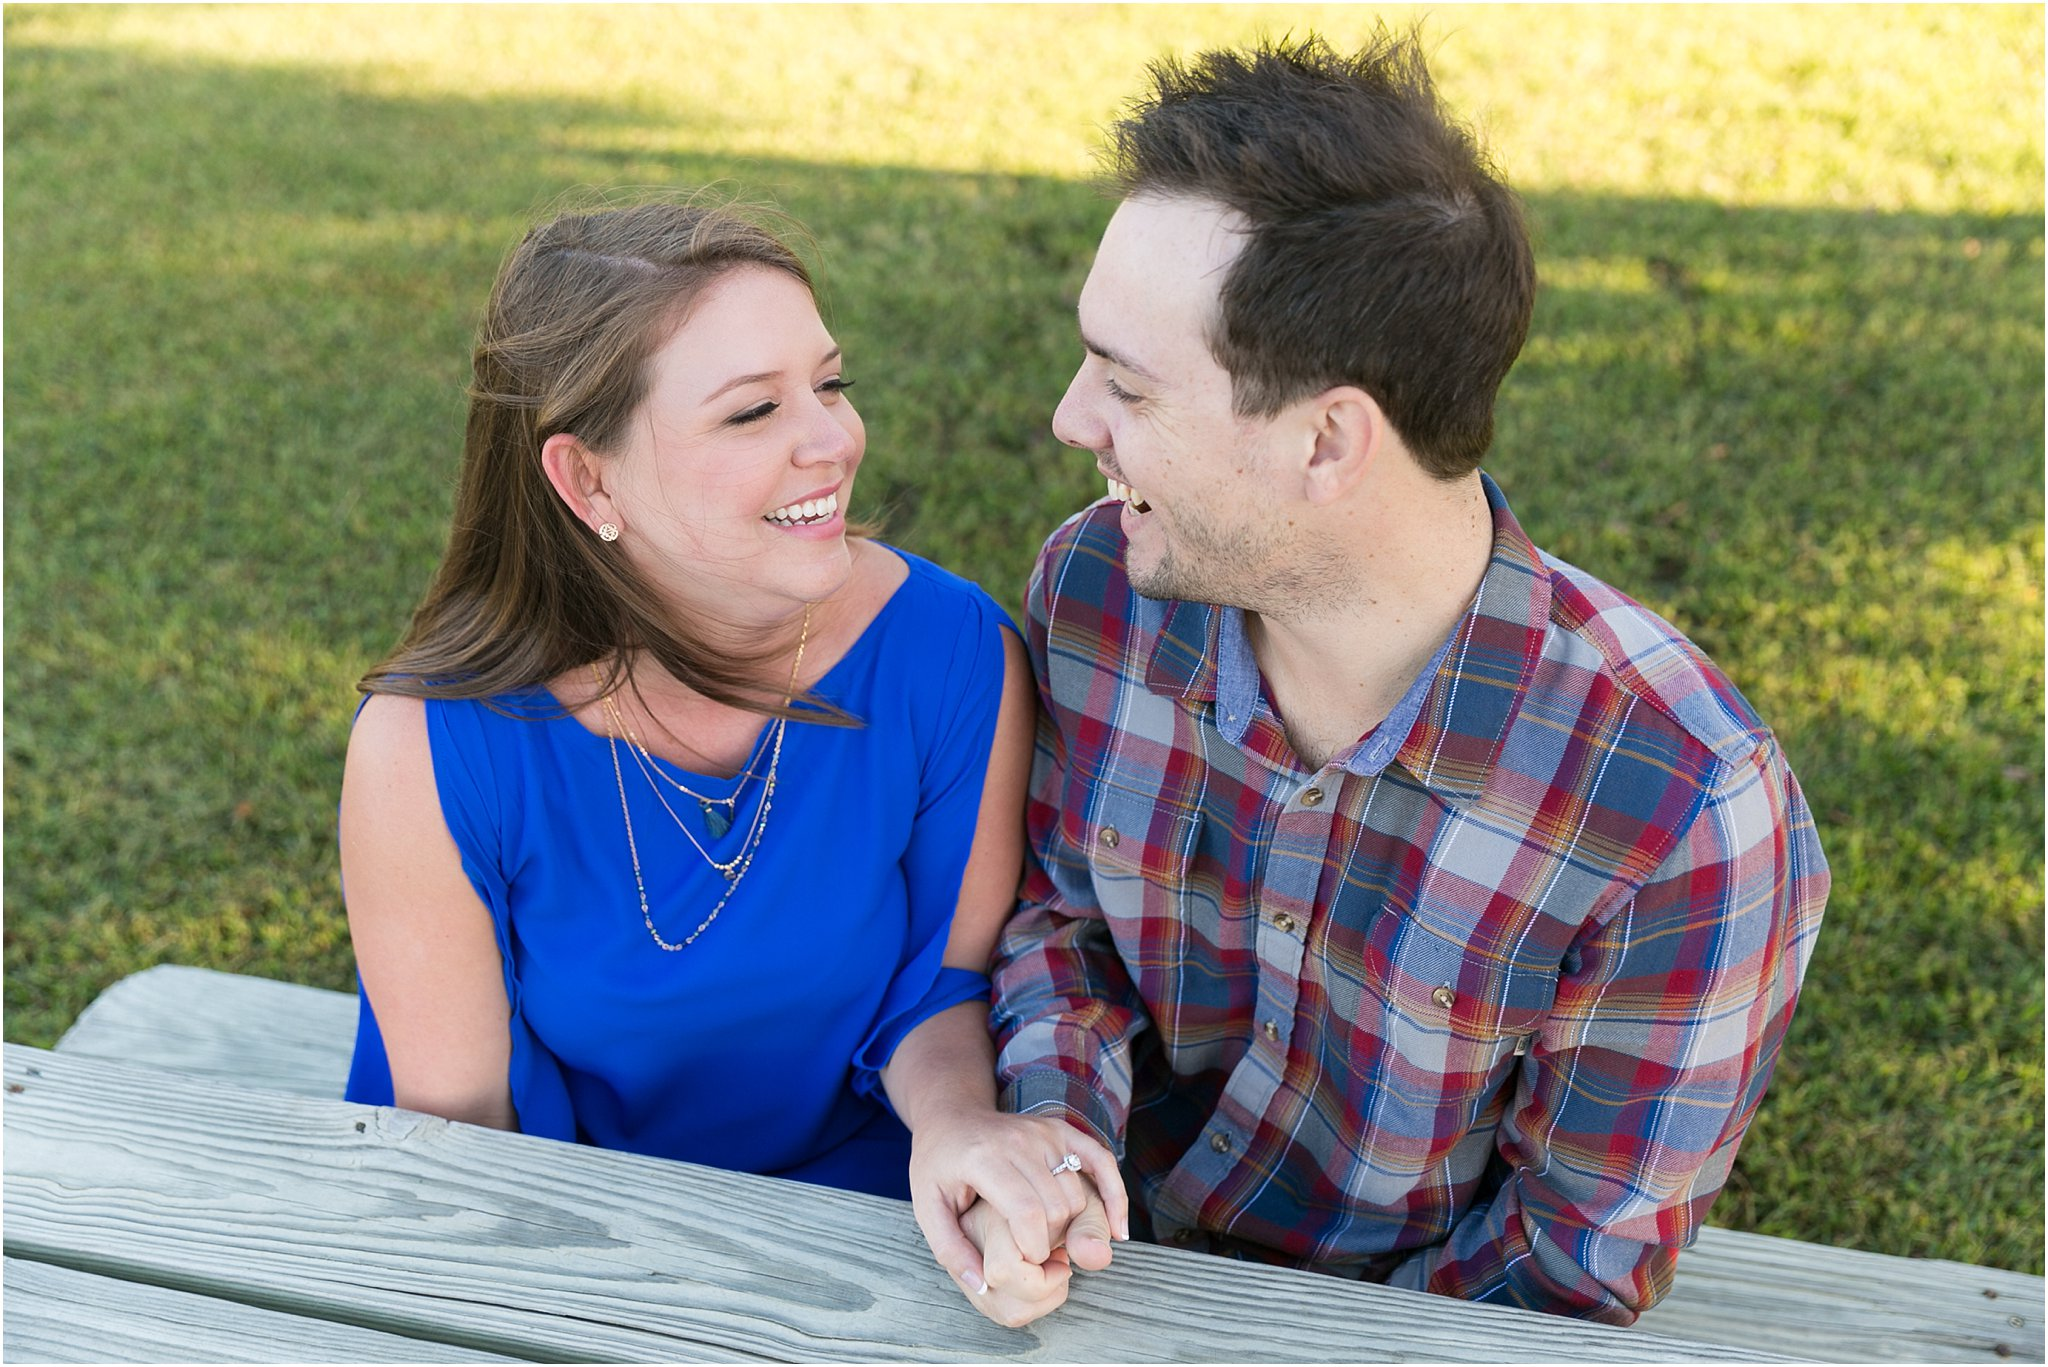 jessica_ryan_photography_virginia_beach_holly_ridge_manor_engagements_0991